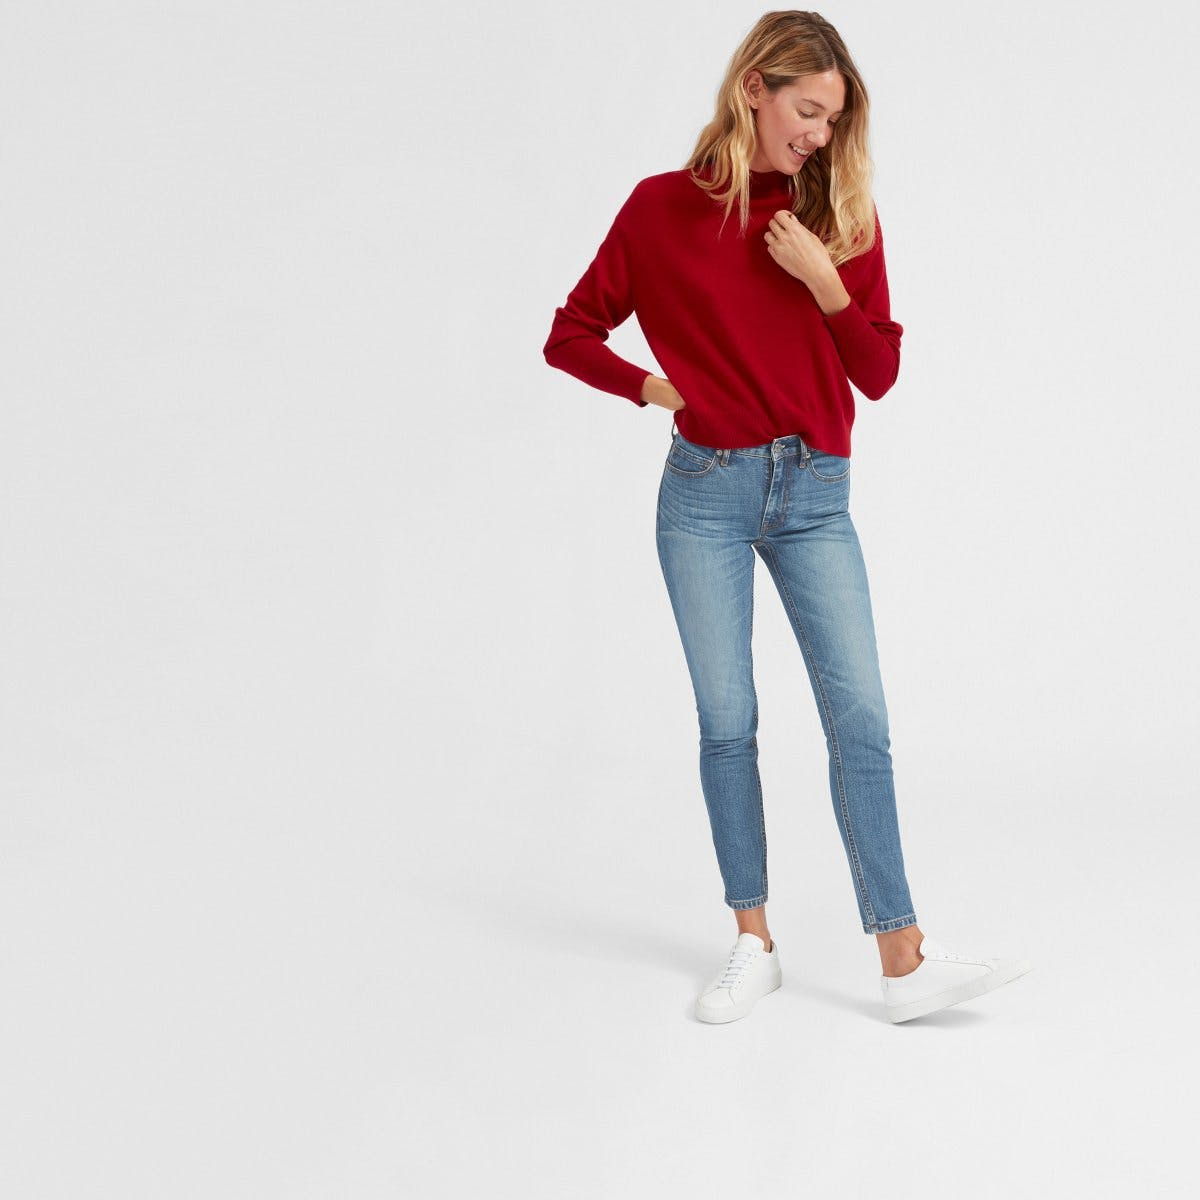 everlane, everlane jeans, everlane denim, japanese denim, cropped jeans, lightwash jeans, blue jeans, blue denim, mid-rise jeans, skinny jeans, denimblog, denim blog